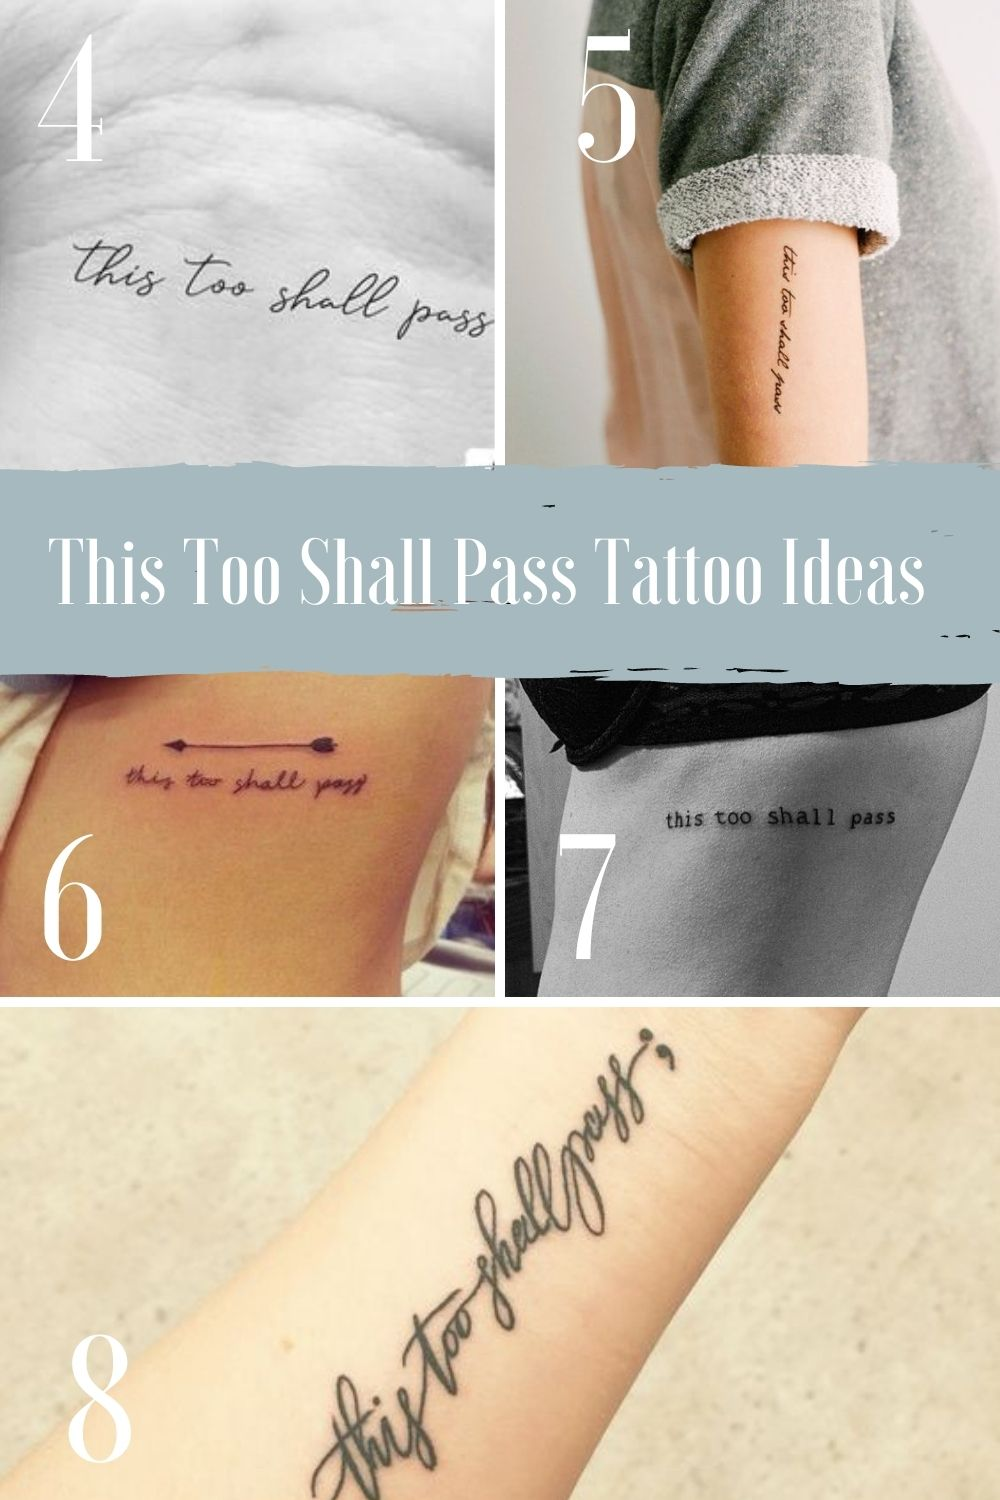 This too shall pass bible verse tattoo